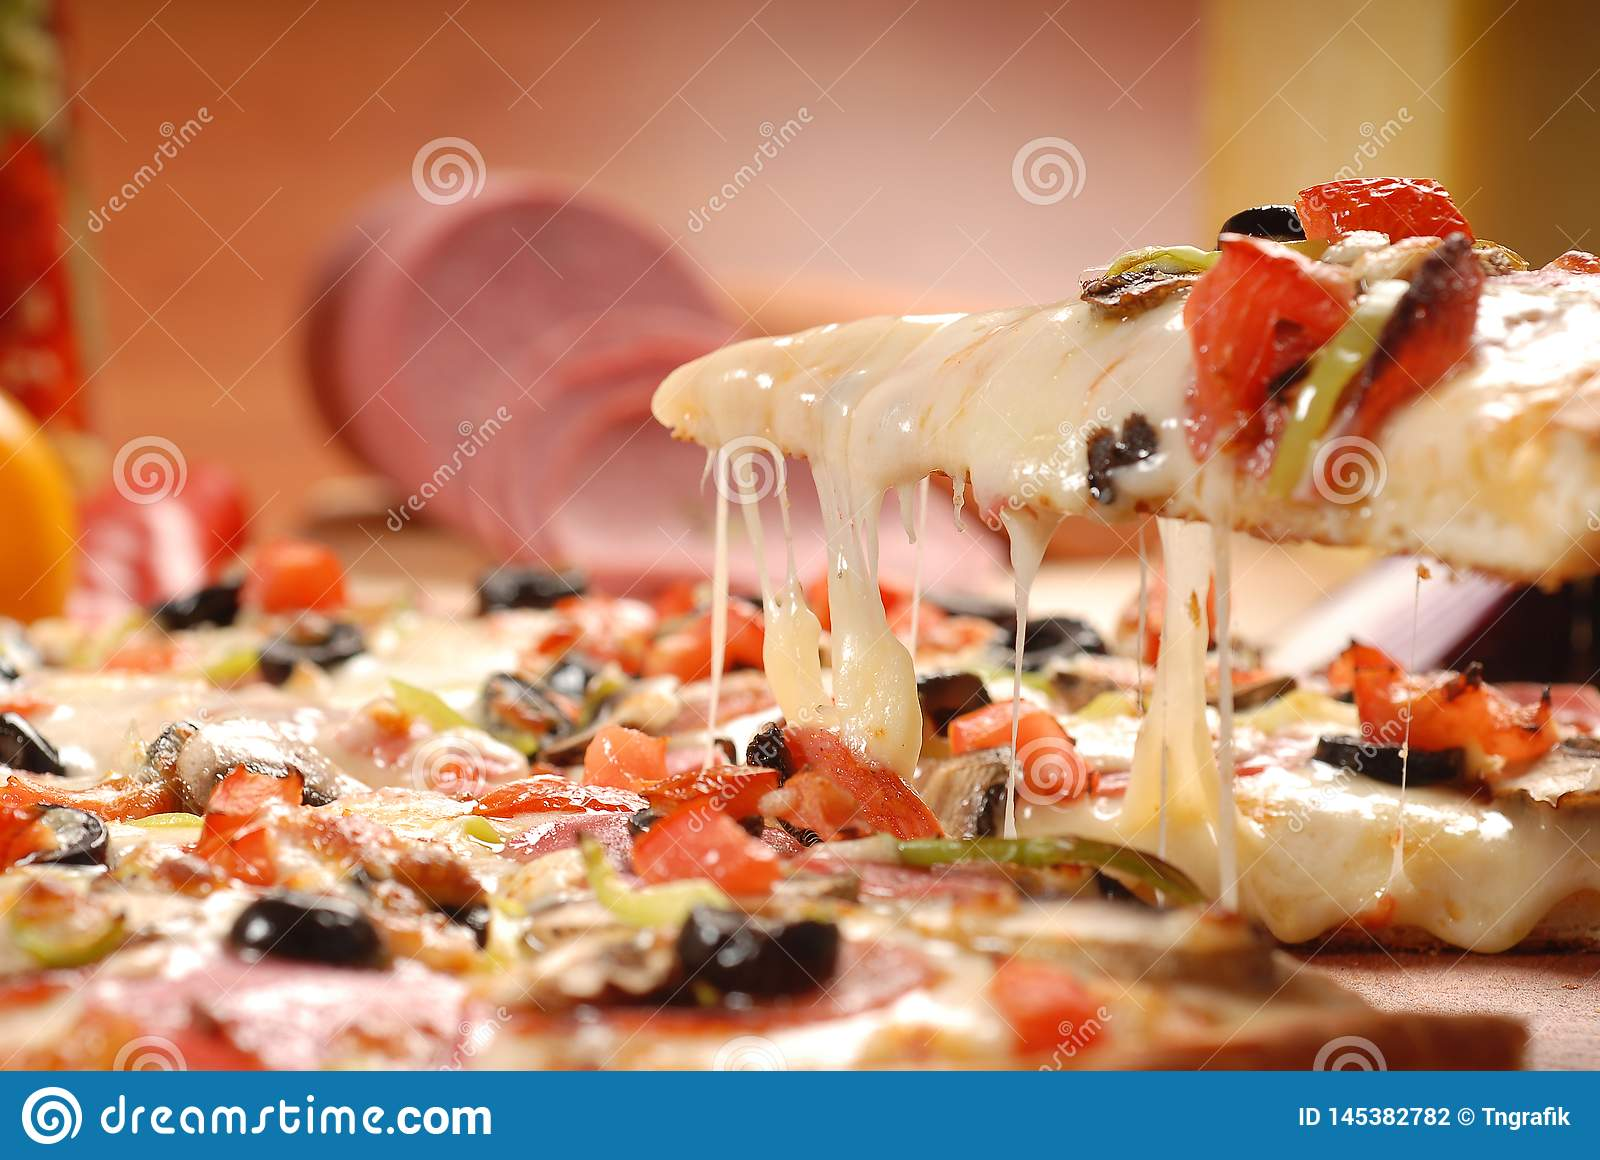 American pizza with pepperoni, mozzarella and tomato sauce. Pizza on a wooden table, morning, dawn